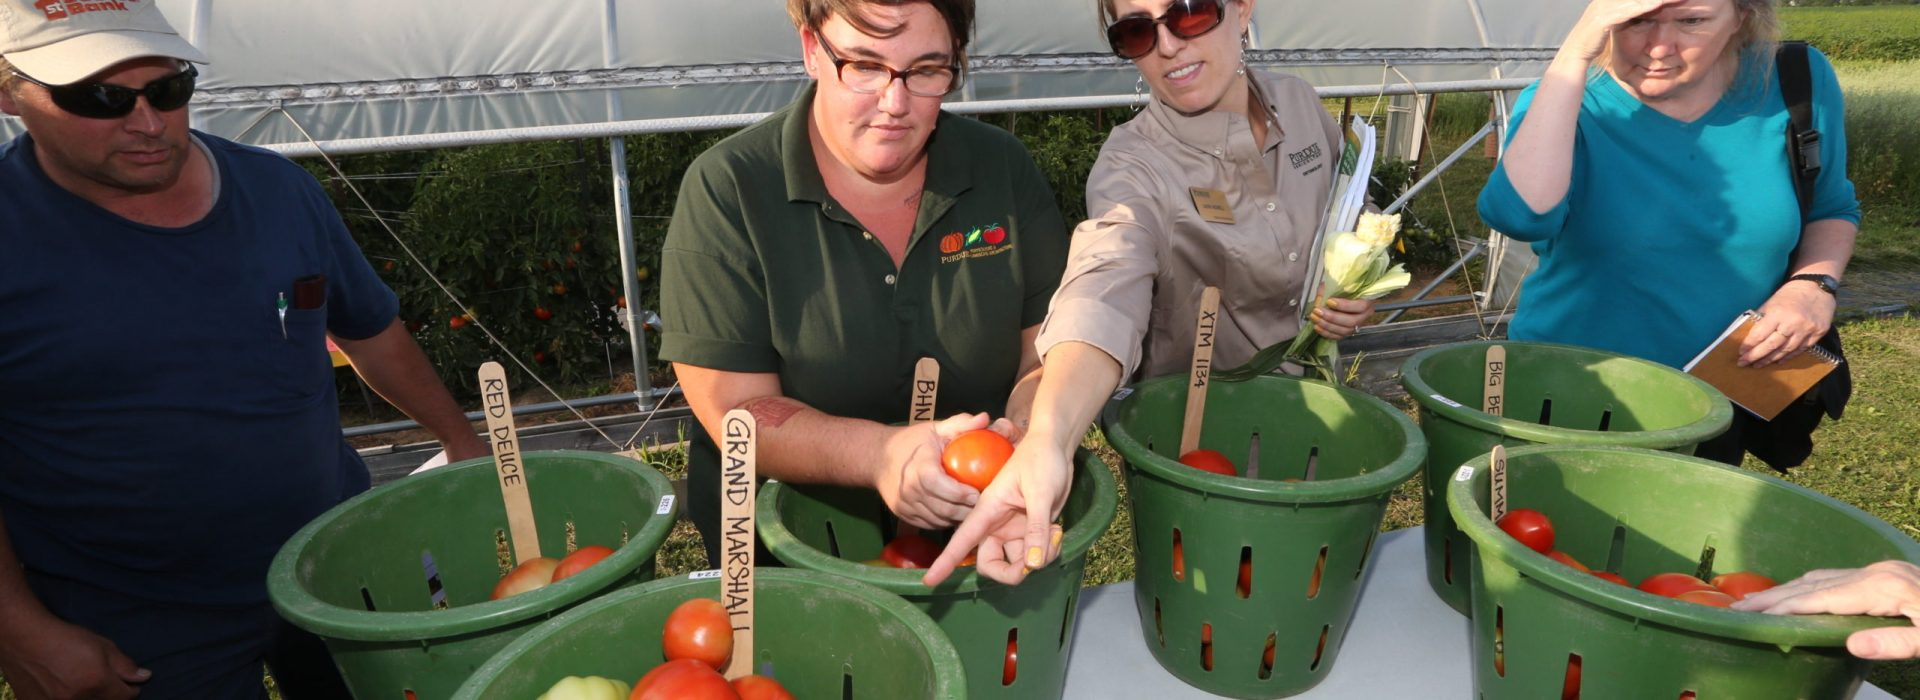 Pinney Agricultural Field Day - 08/15/2017 - Photos from the vegetable and high tunnel field day on Aug. 15, 2017 at the Pinney Purdue Agricultural Center (PPAC).